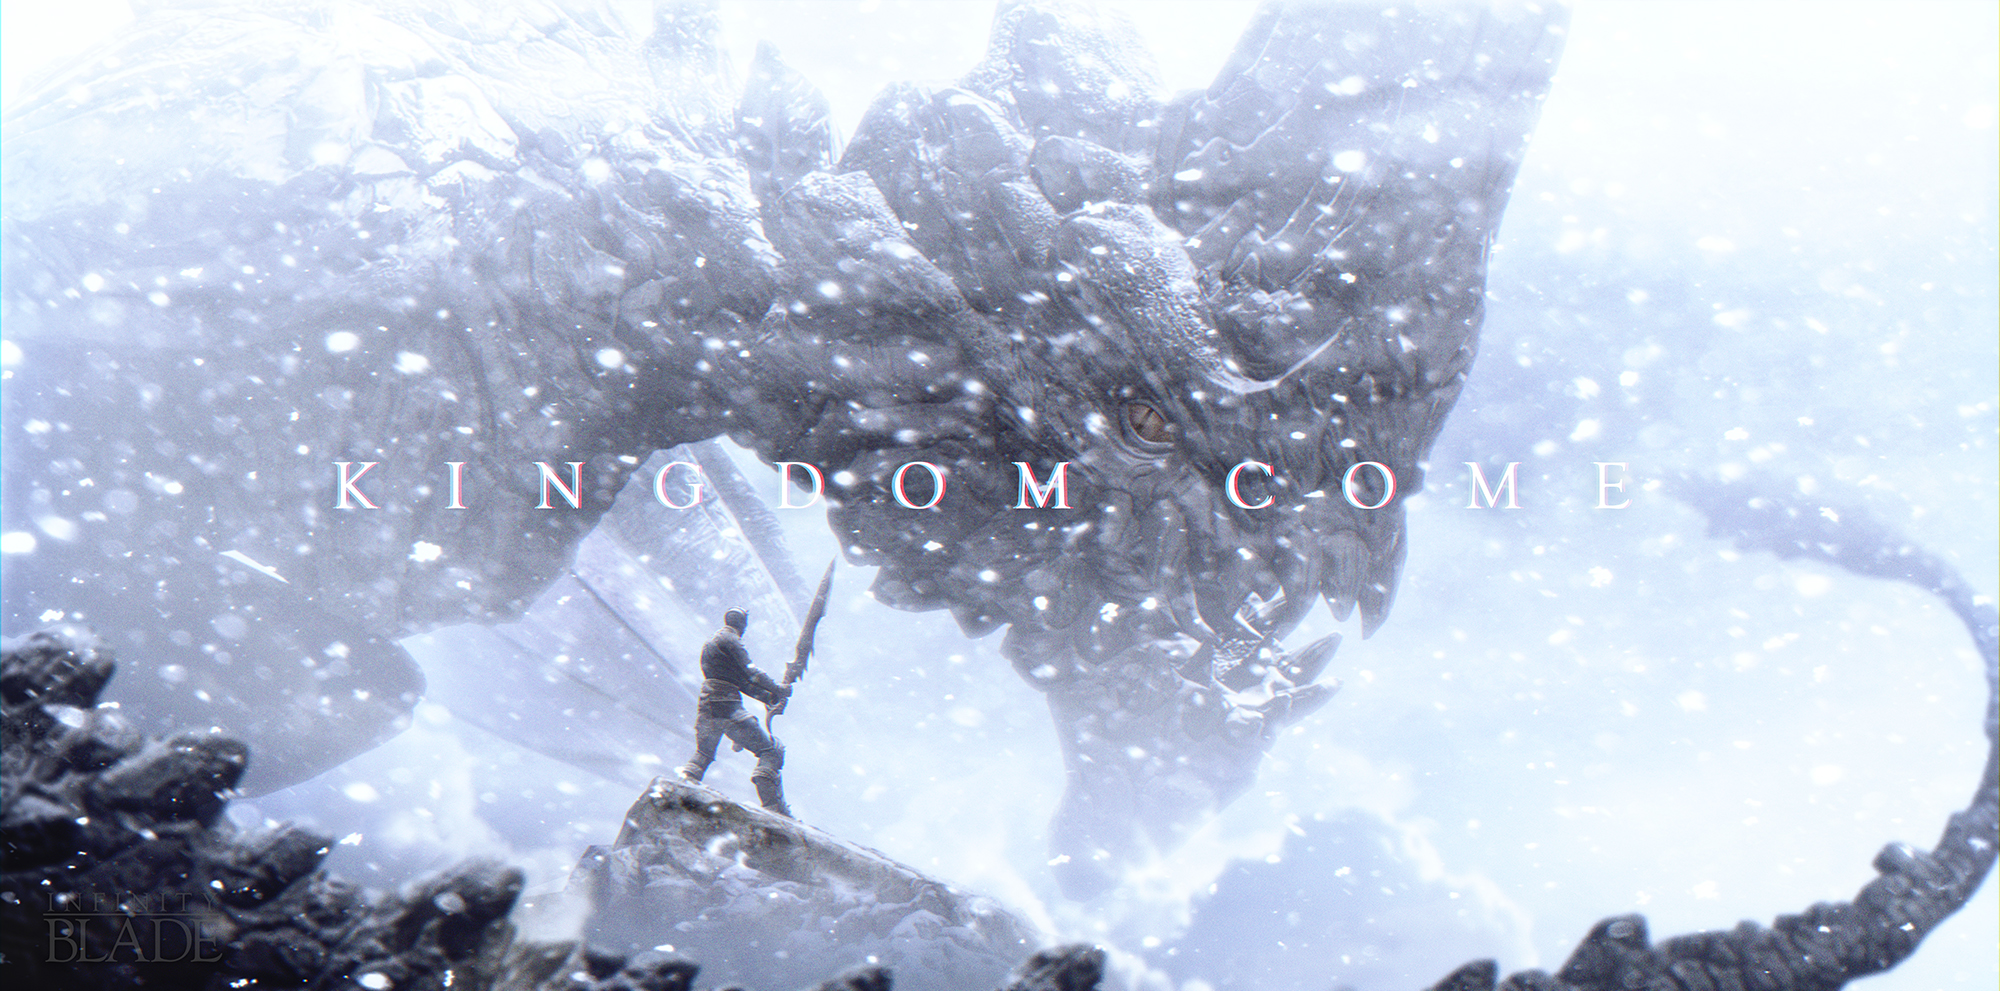 Prepare to be blown to 'Kingdom Come' with the epic conclusion of Infinity Blade III